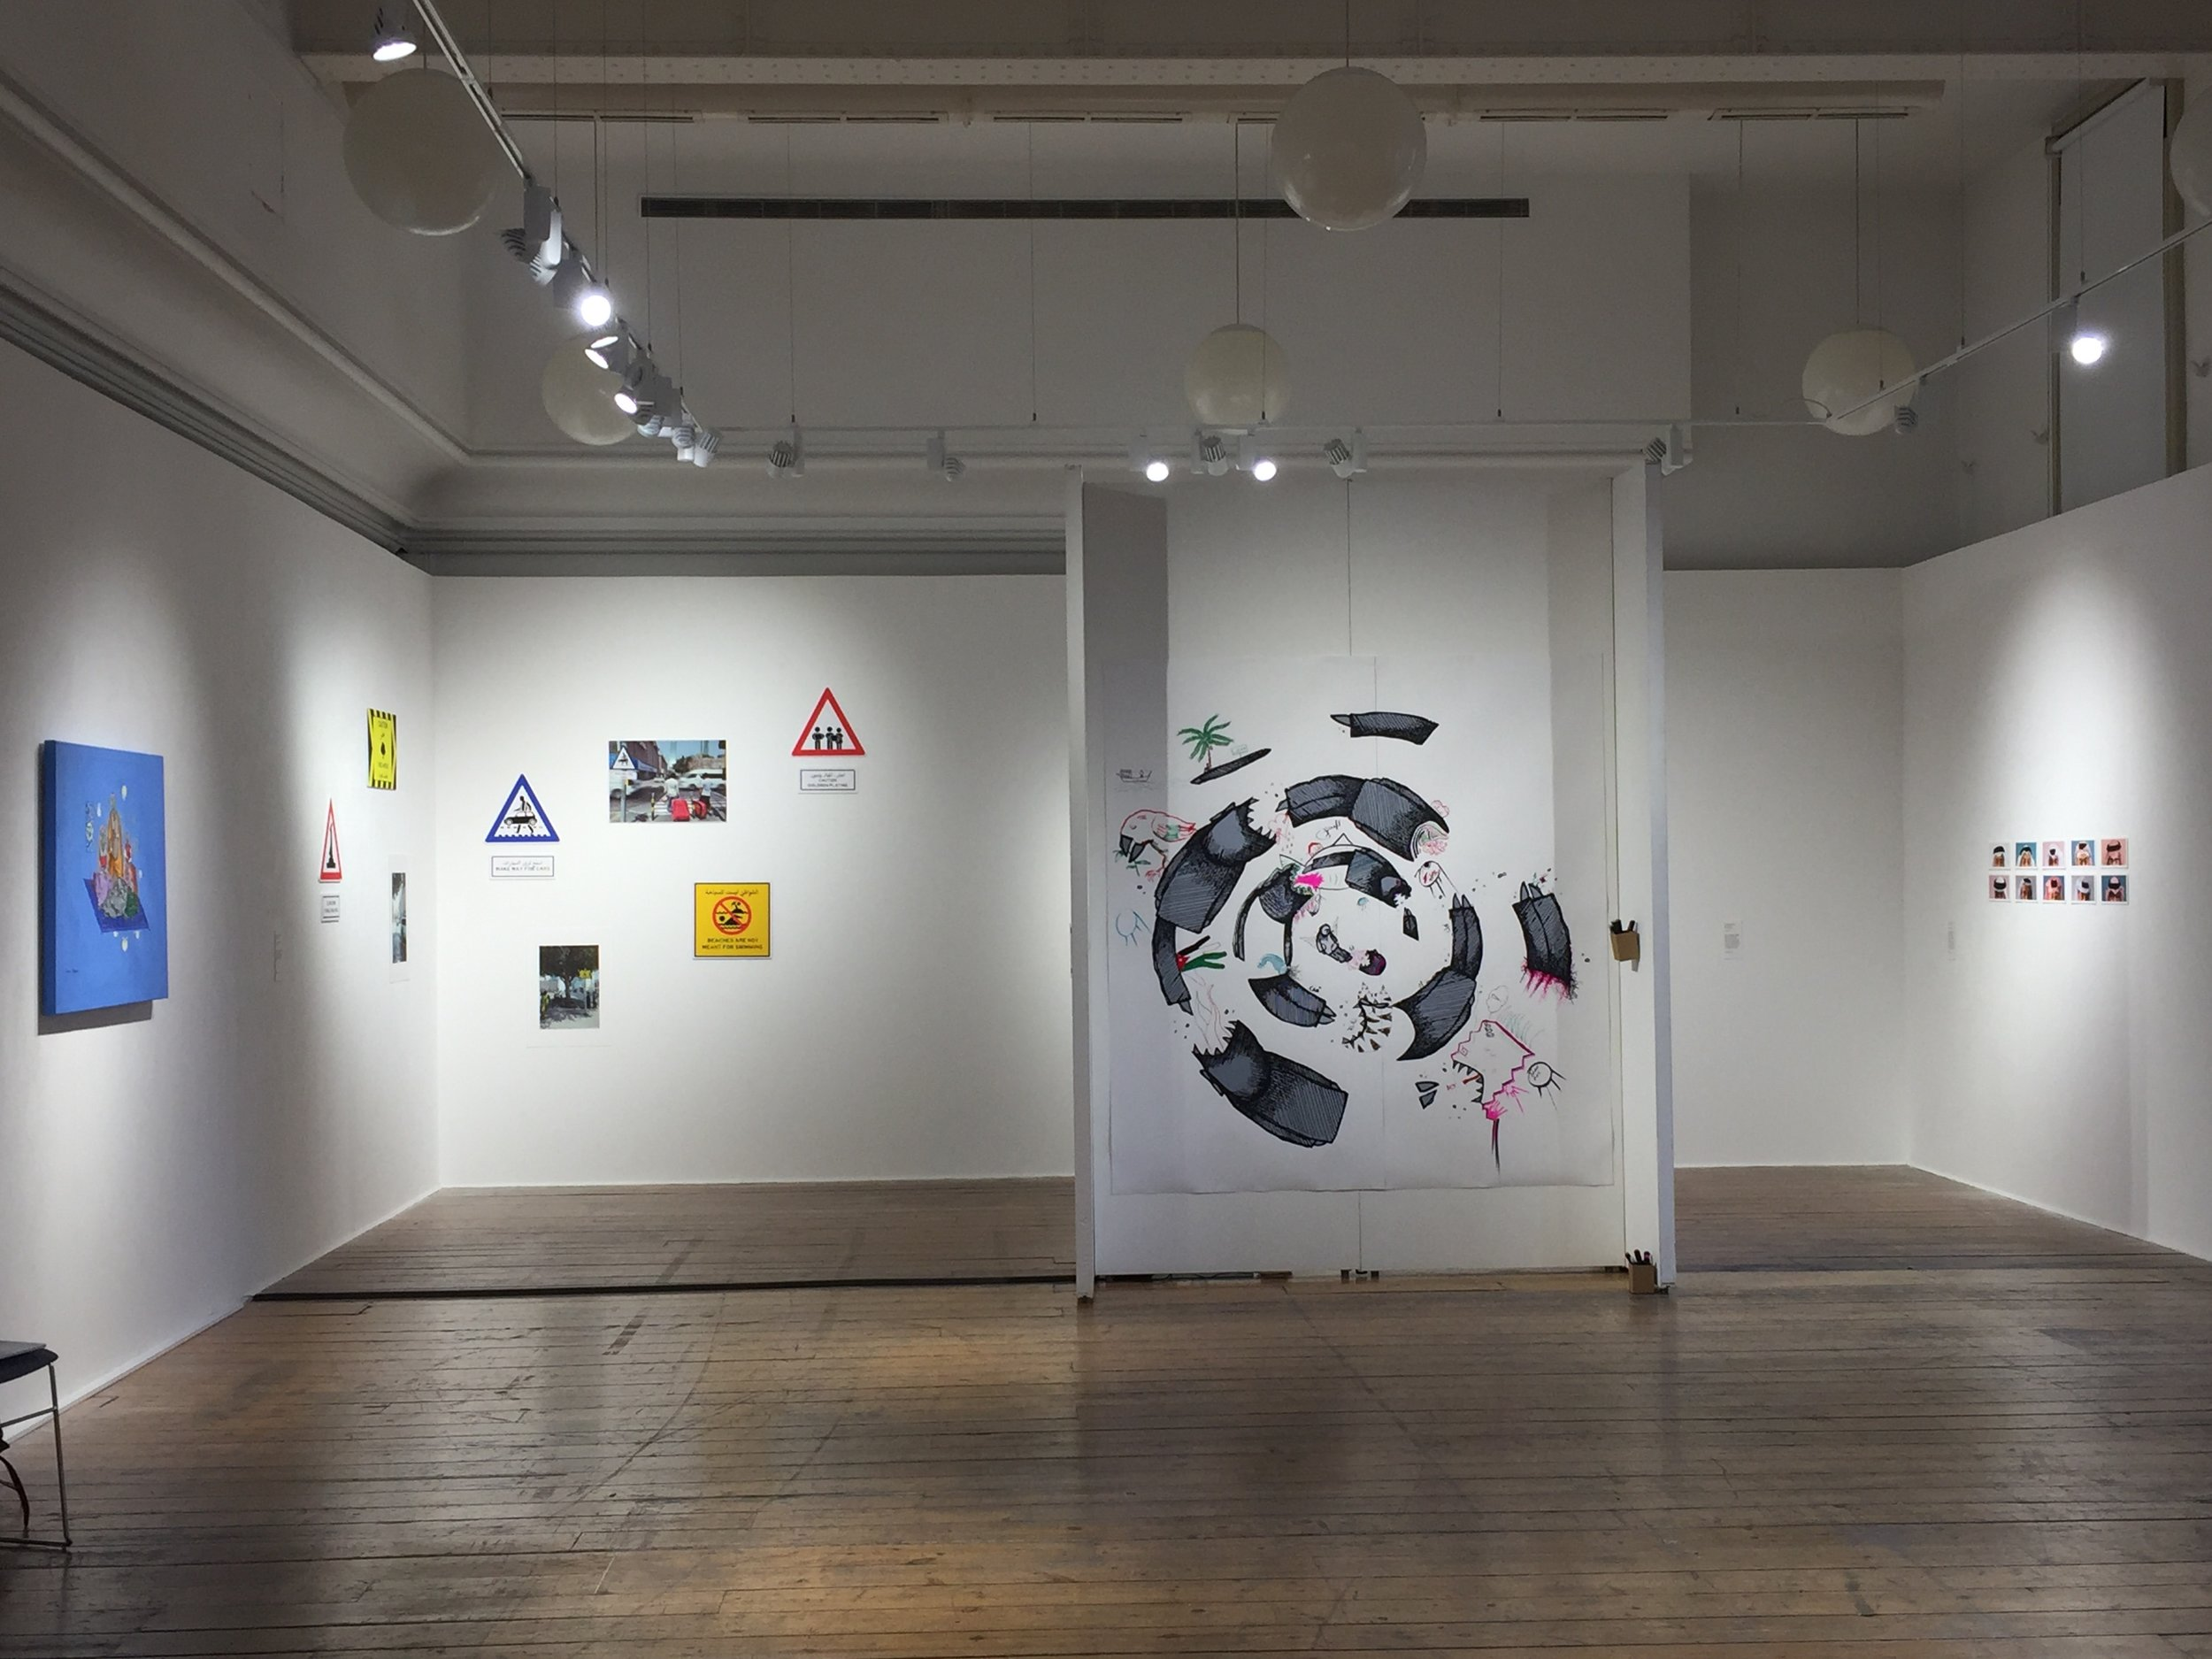 Exhibition was held in the International Projects Space at BCU School of Arts in Birmingham, UK